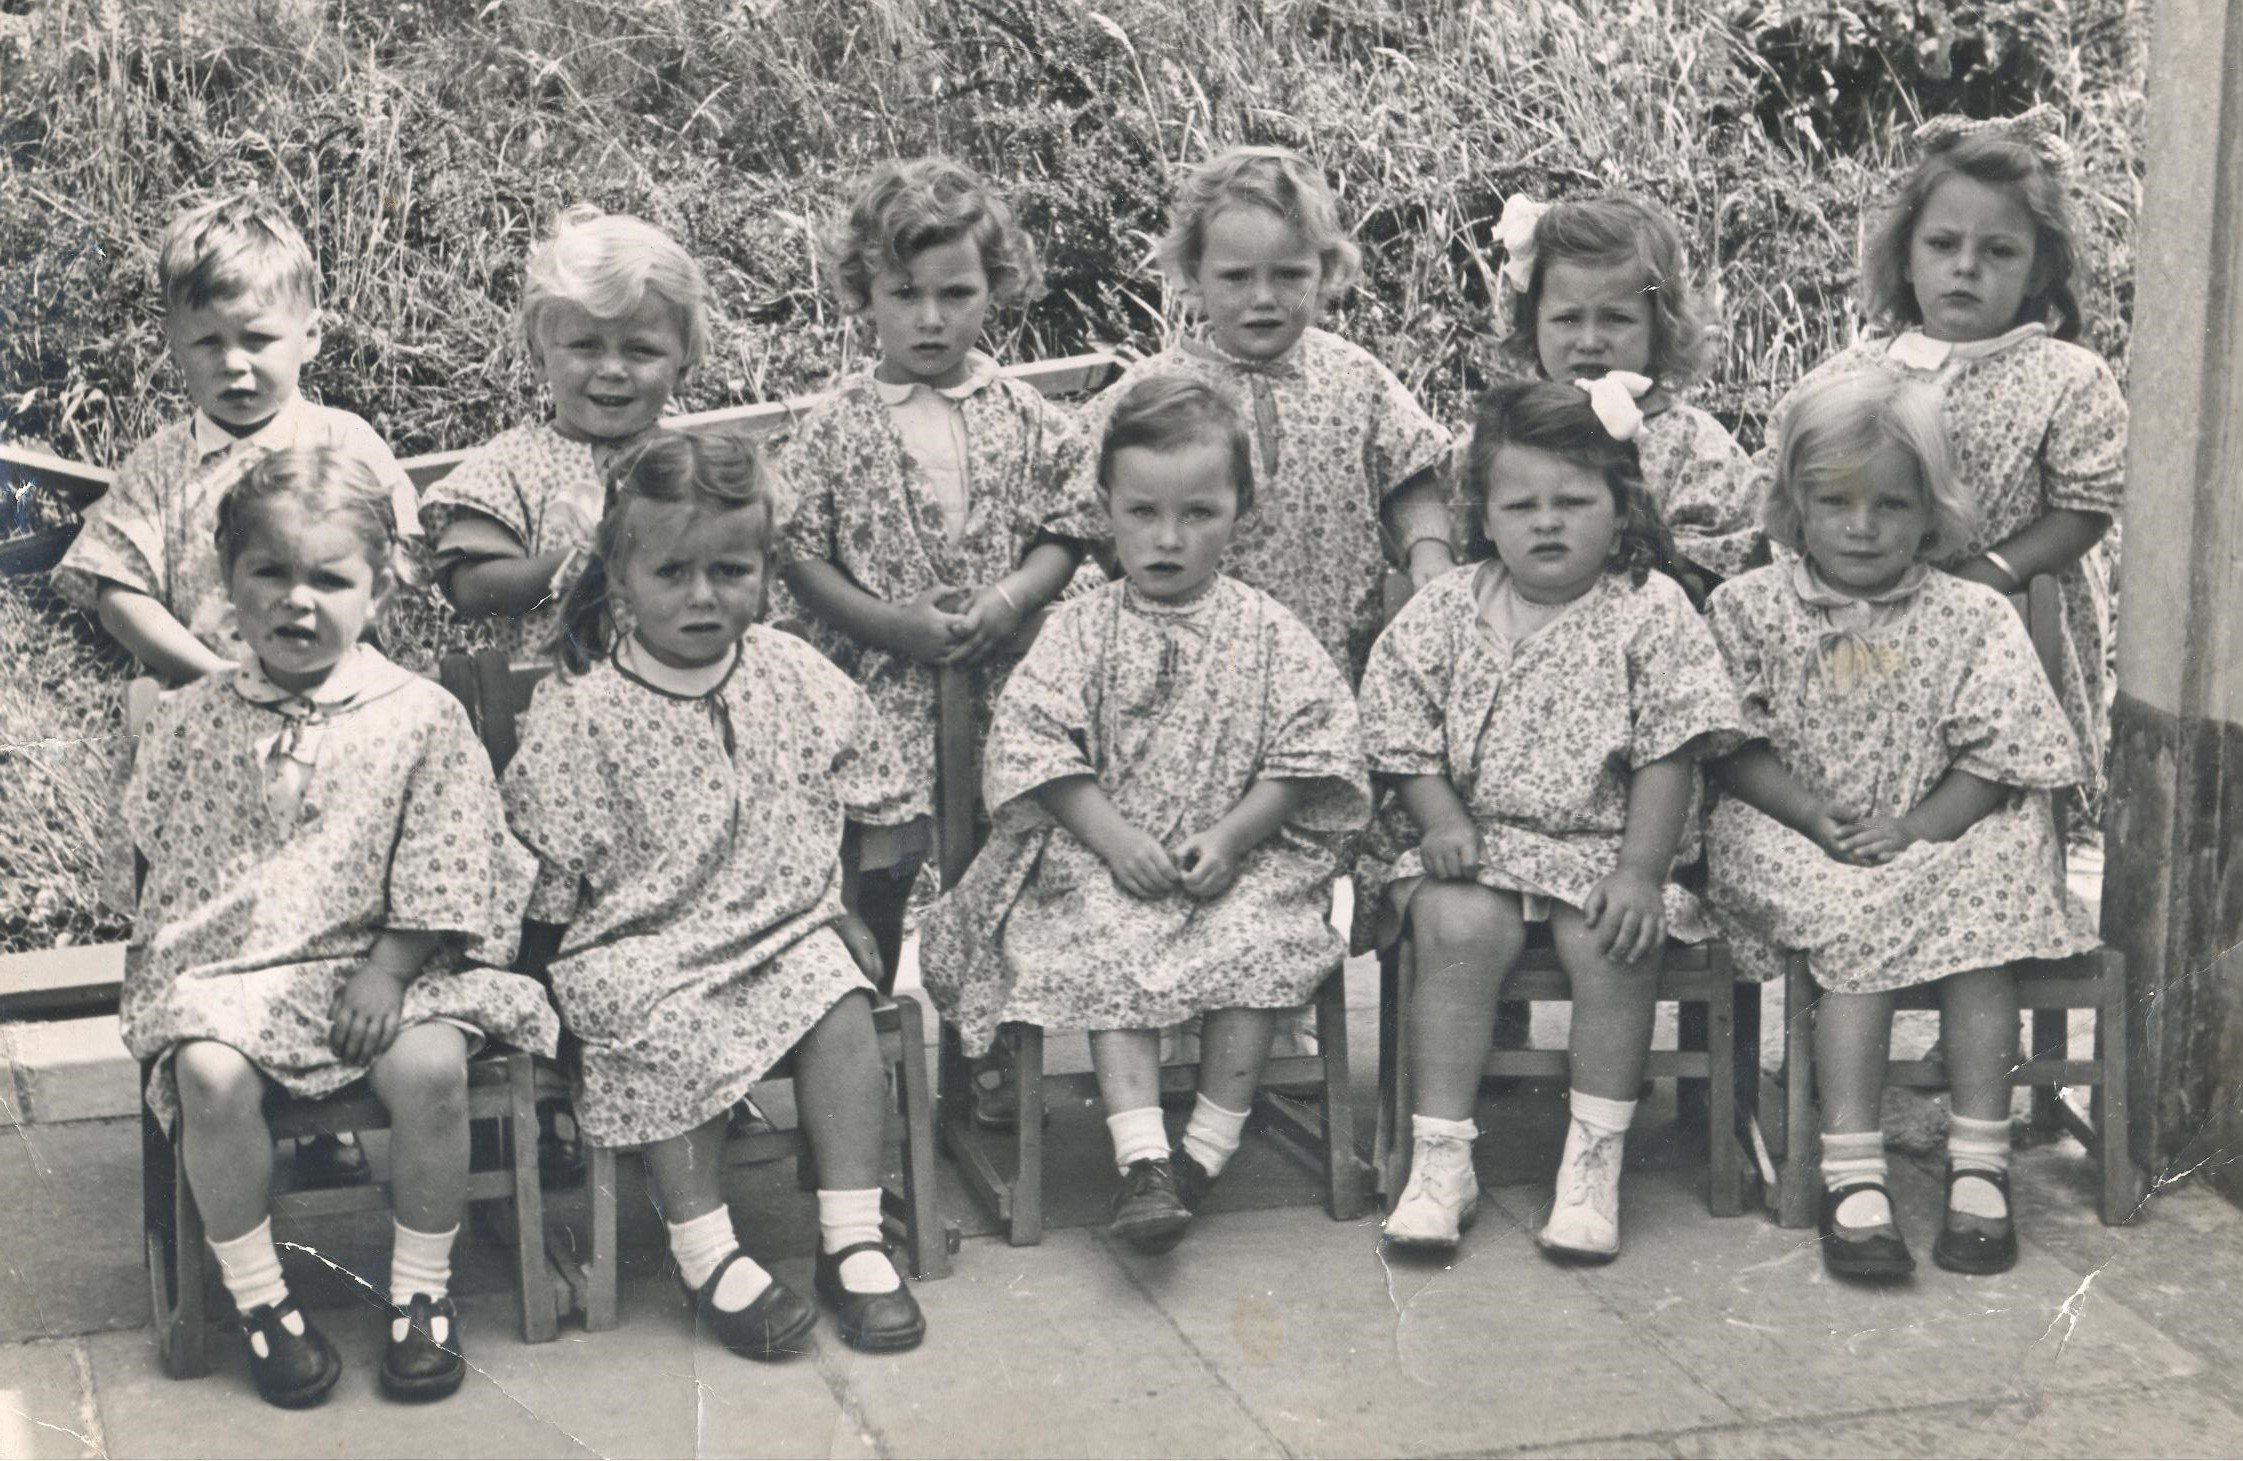 MEMORIES: Cadoxton Nursery in 1950